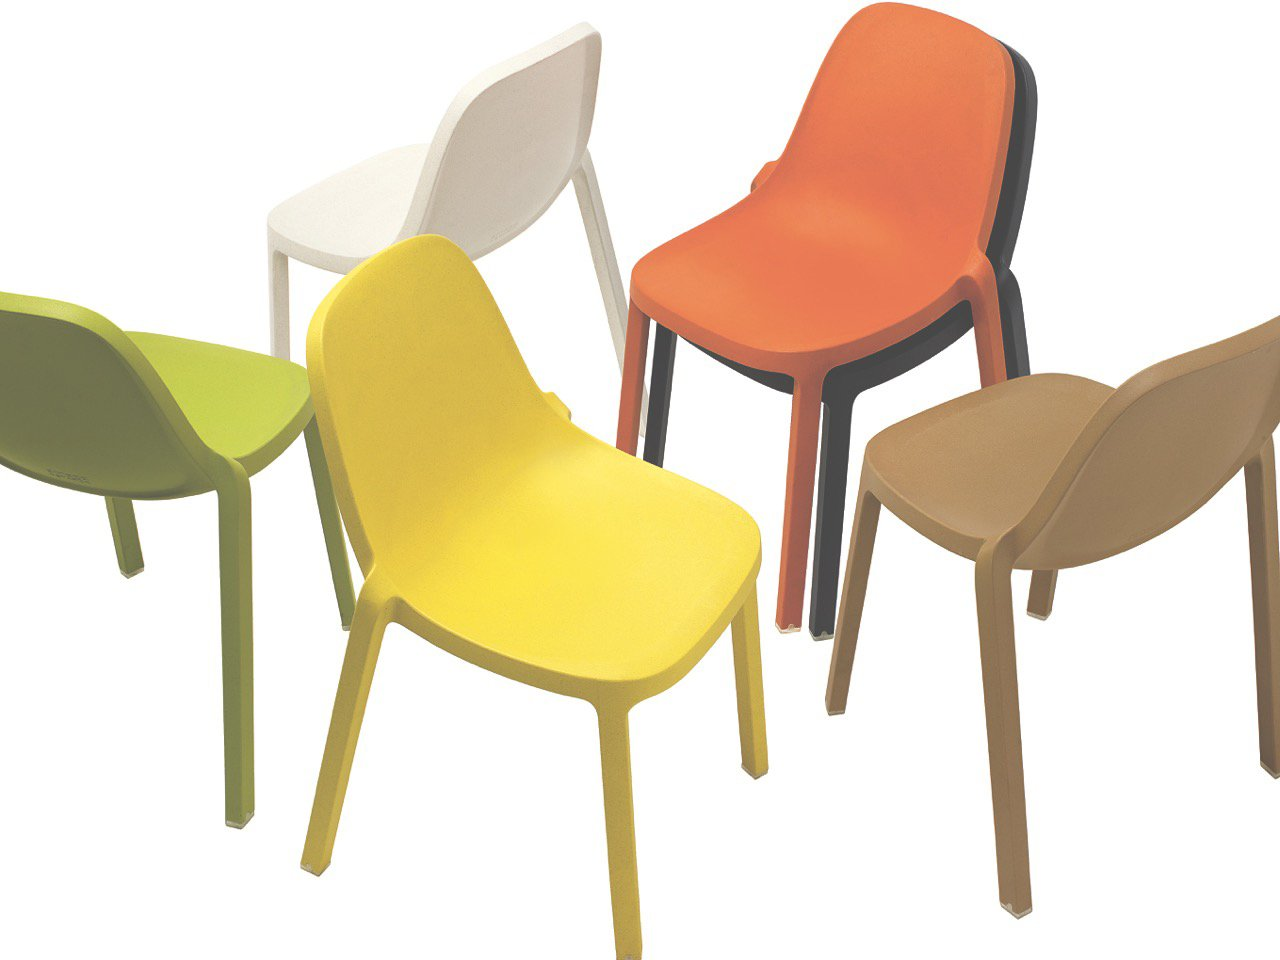 Philippe starck for Philippe starck chaise